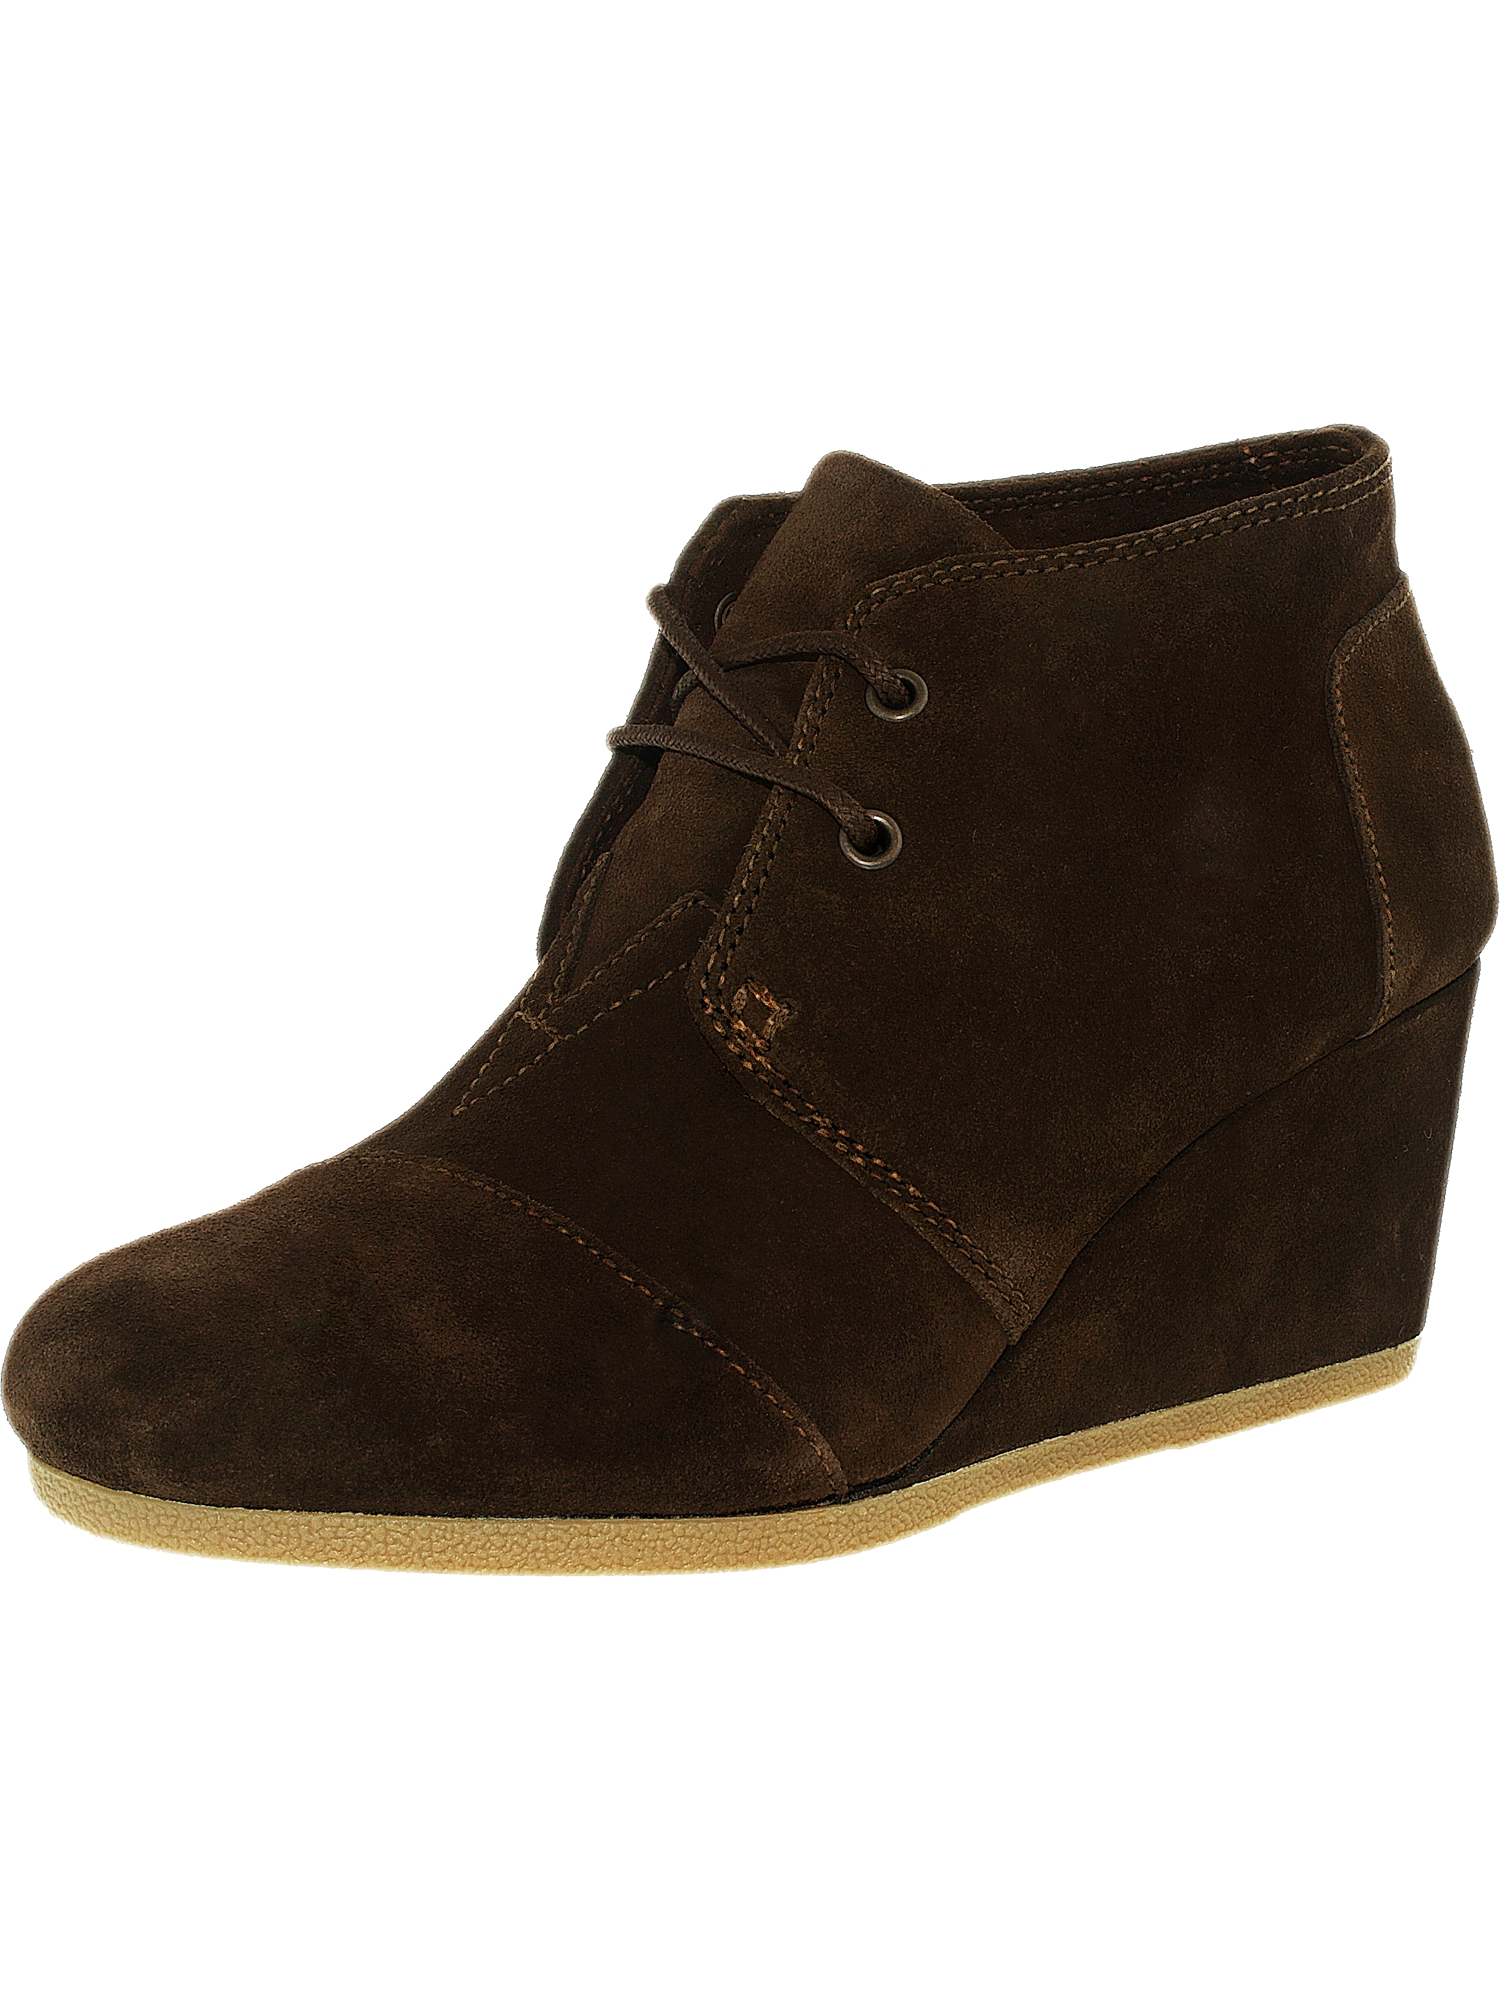 Toms Women's Desert Wedge Suede Toffee Perforated Feaf Ankle-High Pump - 7.5M